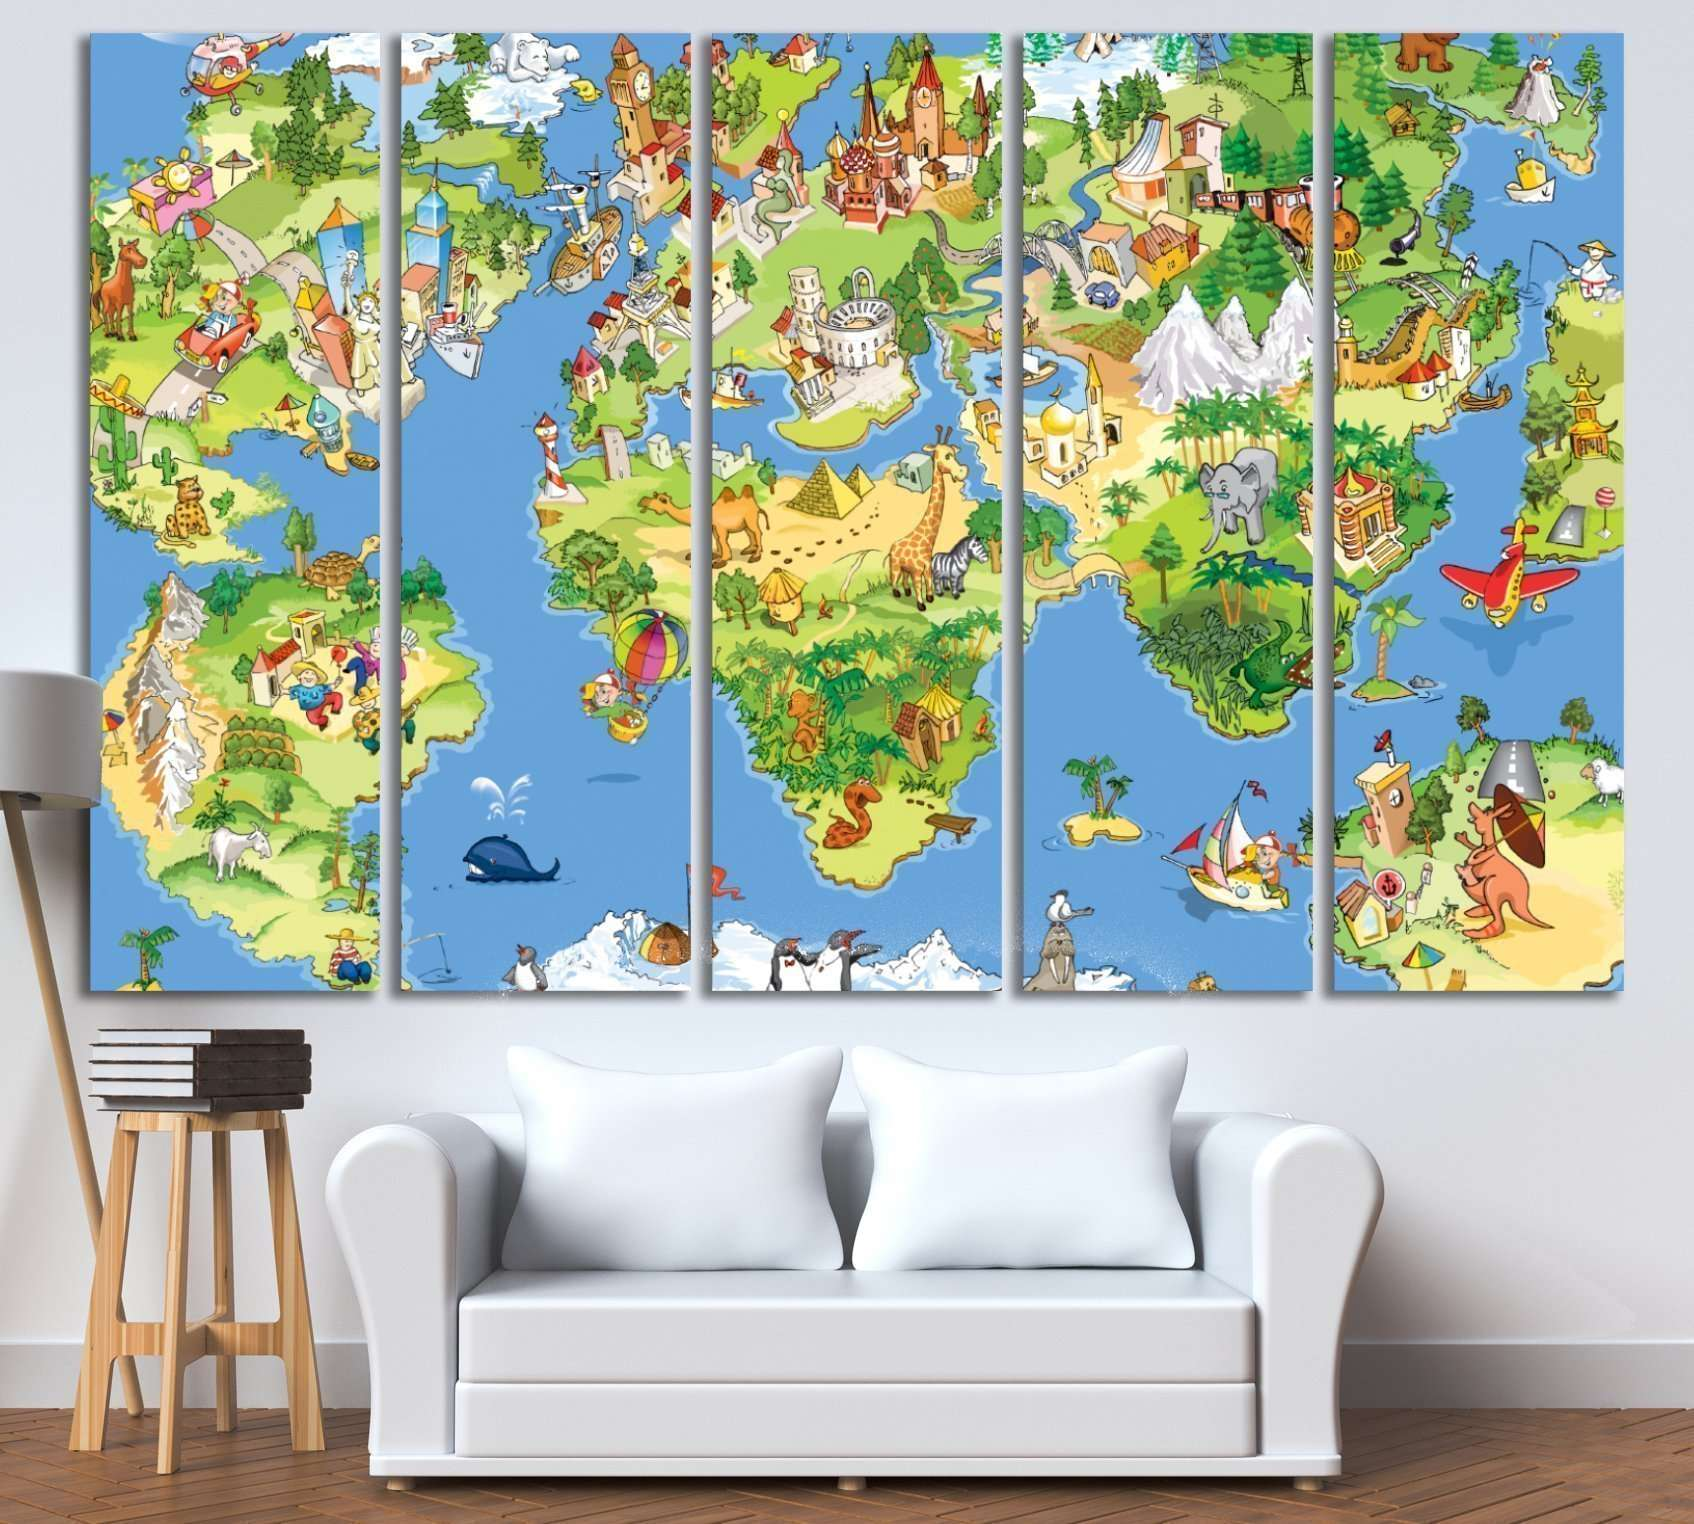 KIDS WORLD MAP At Zellart Canvas Arts - World map for kids room